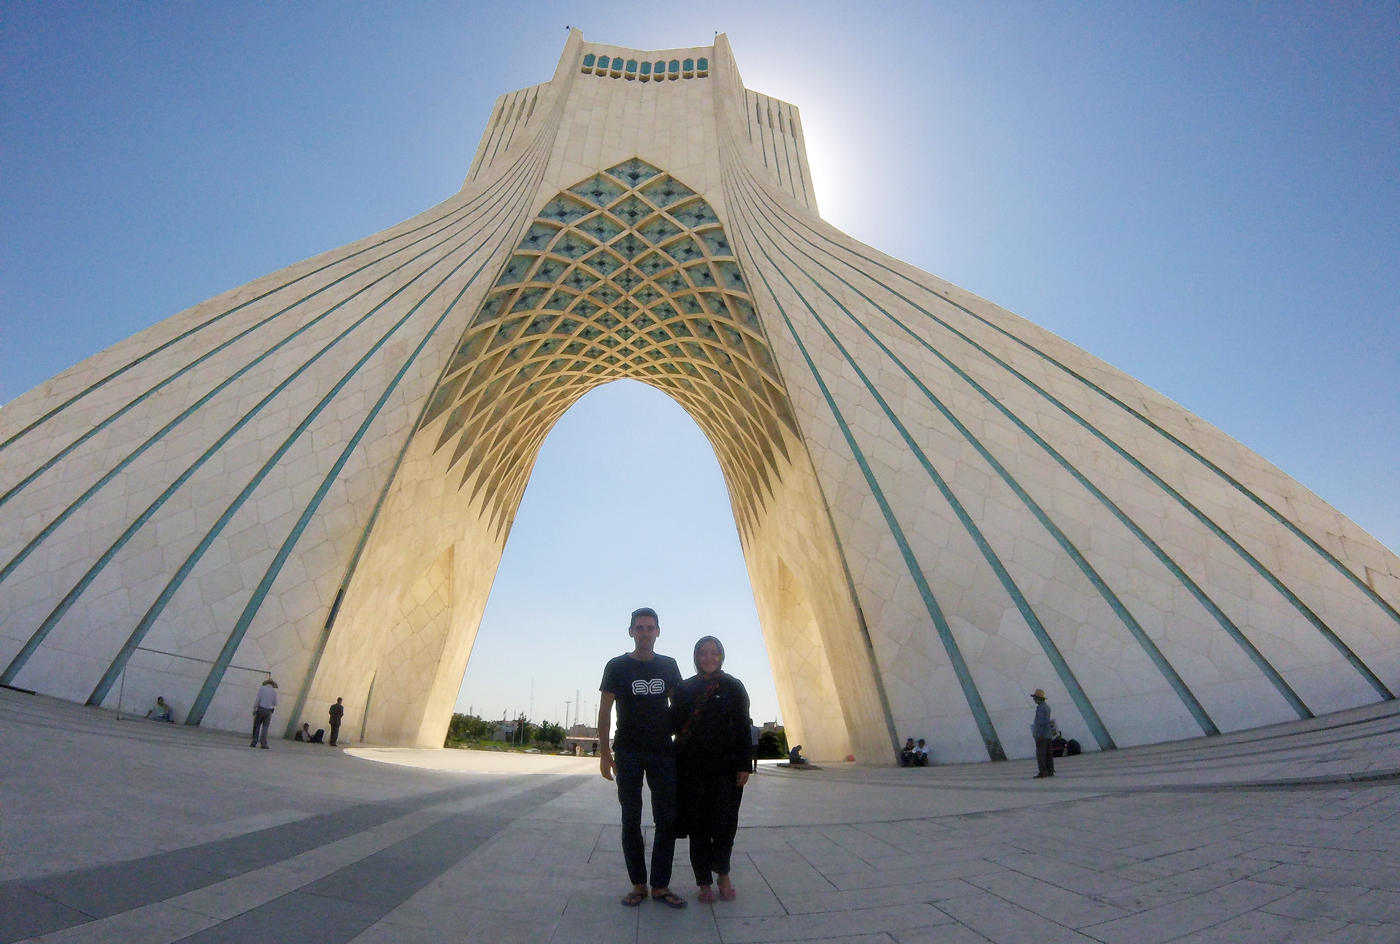 Voyage à vélo, traverser l'Iran à vélo, Tour Azadi à Téhéran. Cycling travel, biketouring, cycling Iran, Azadi Tower in Teheran.